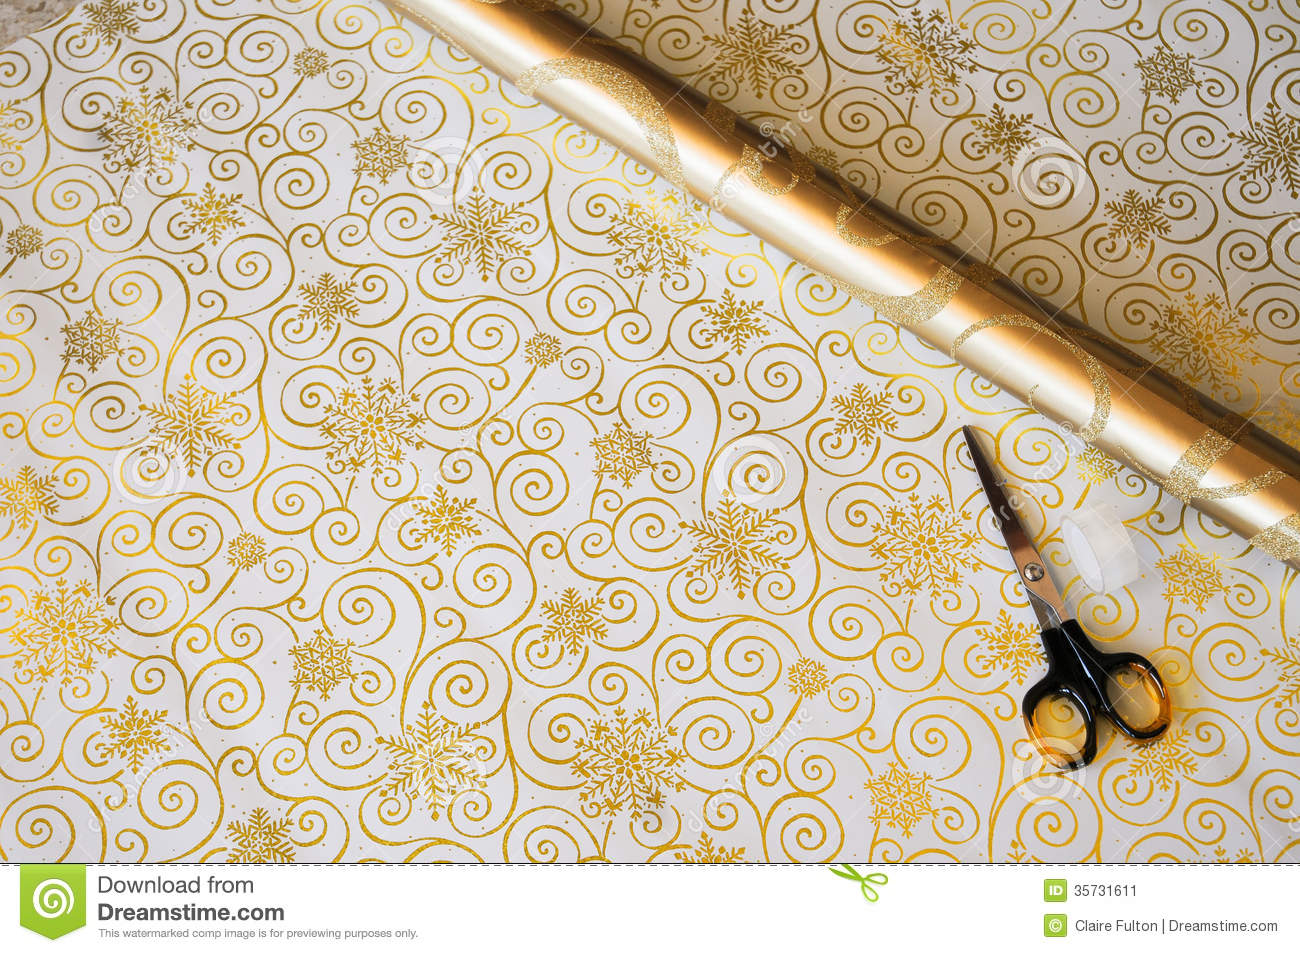 Gold Christmas Gift Wrap And Scissorss Stock Image - Image: 35731611